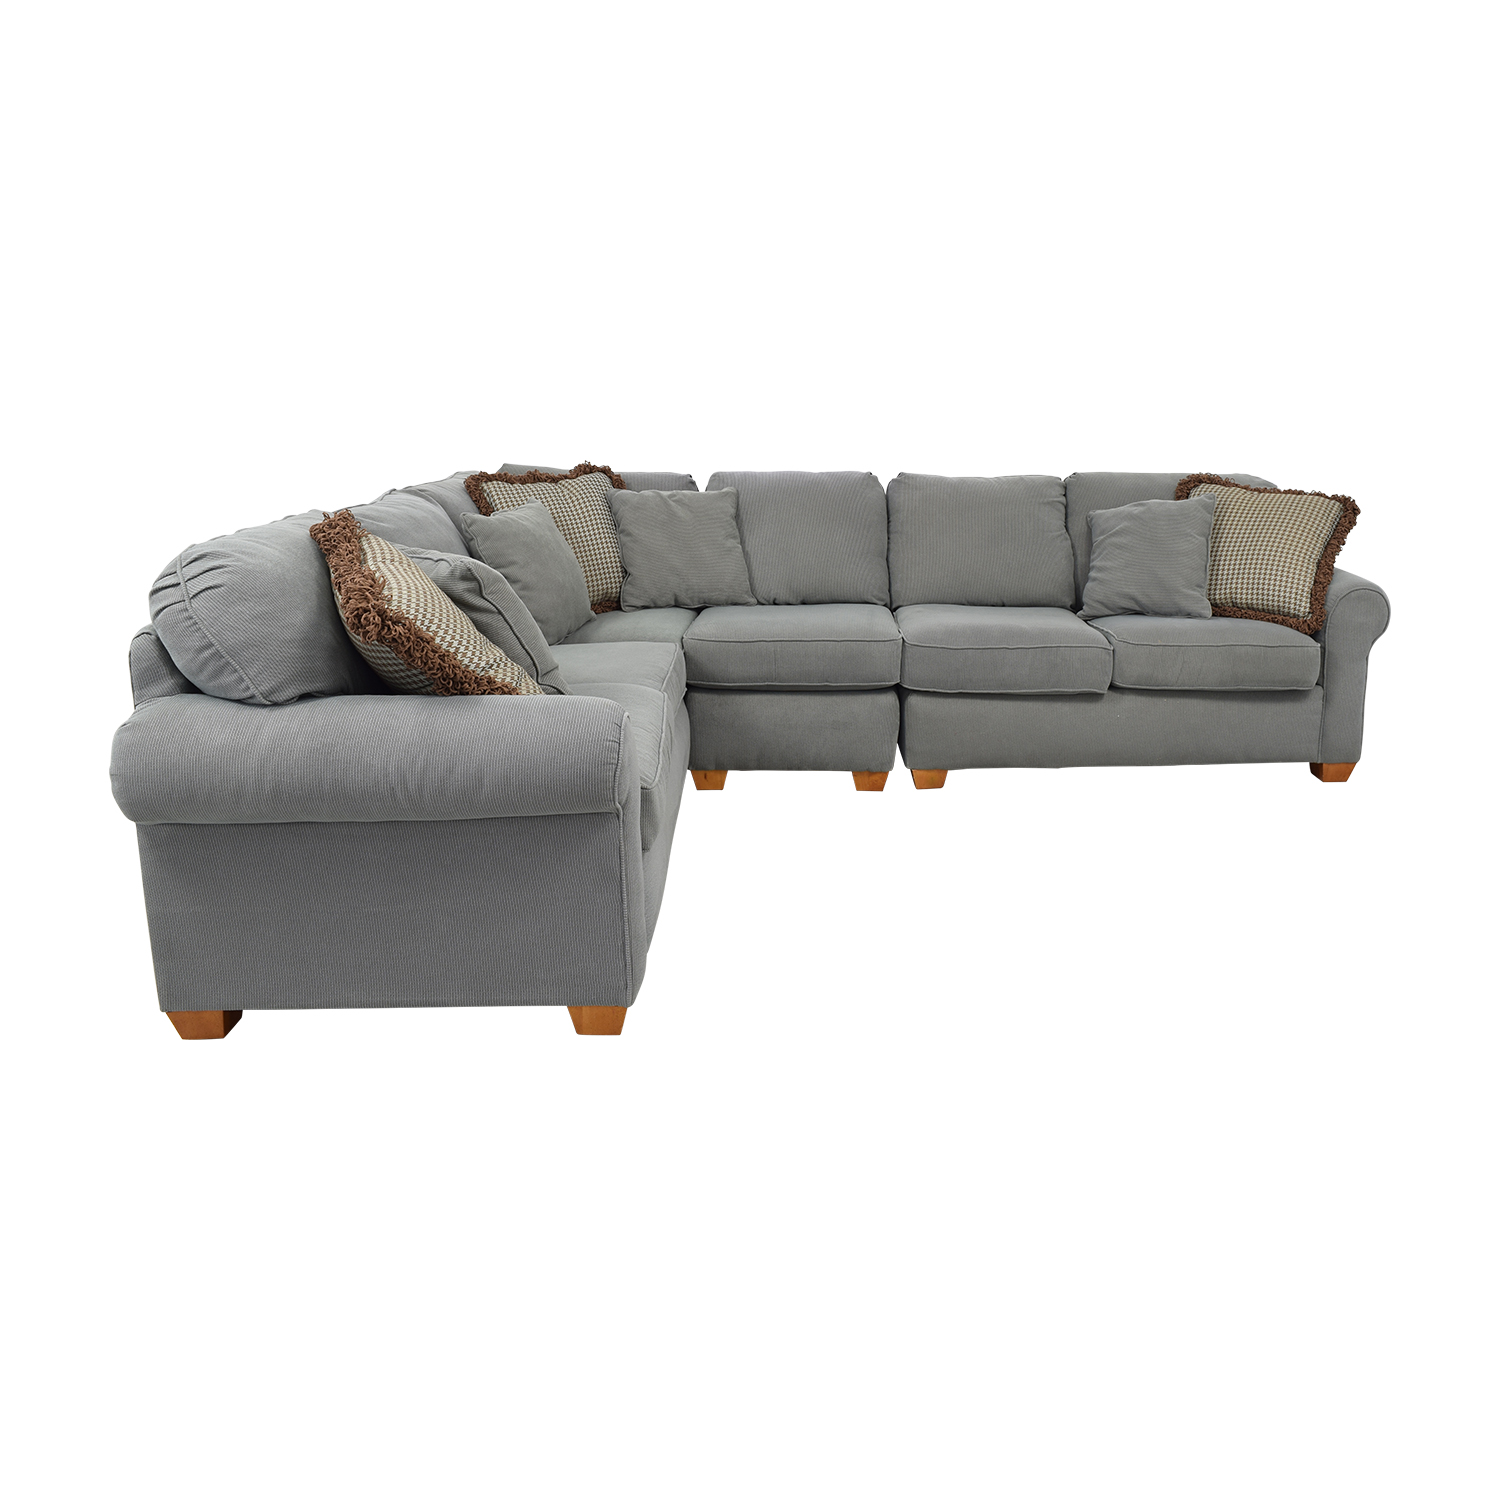 Sleephaven By Flexsteel Three-Piece Sectional / Sectionals